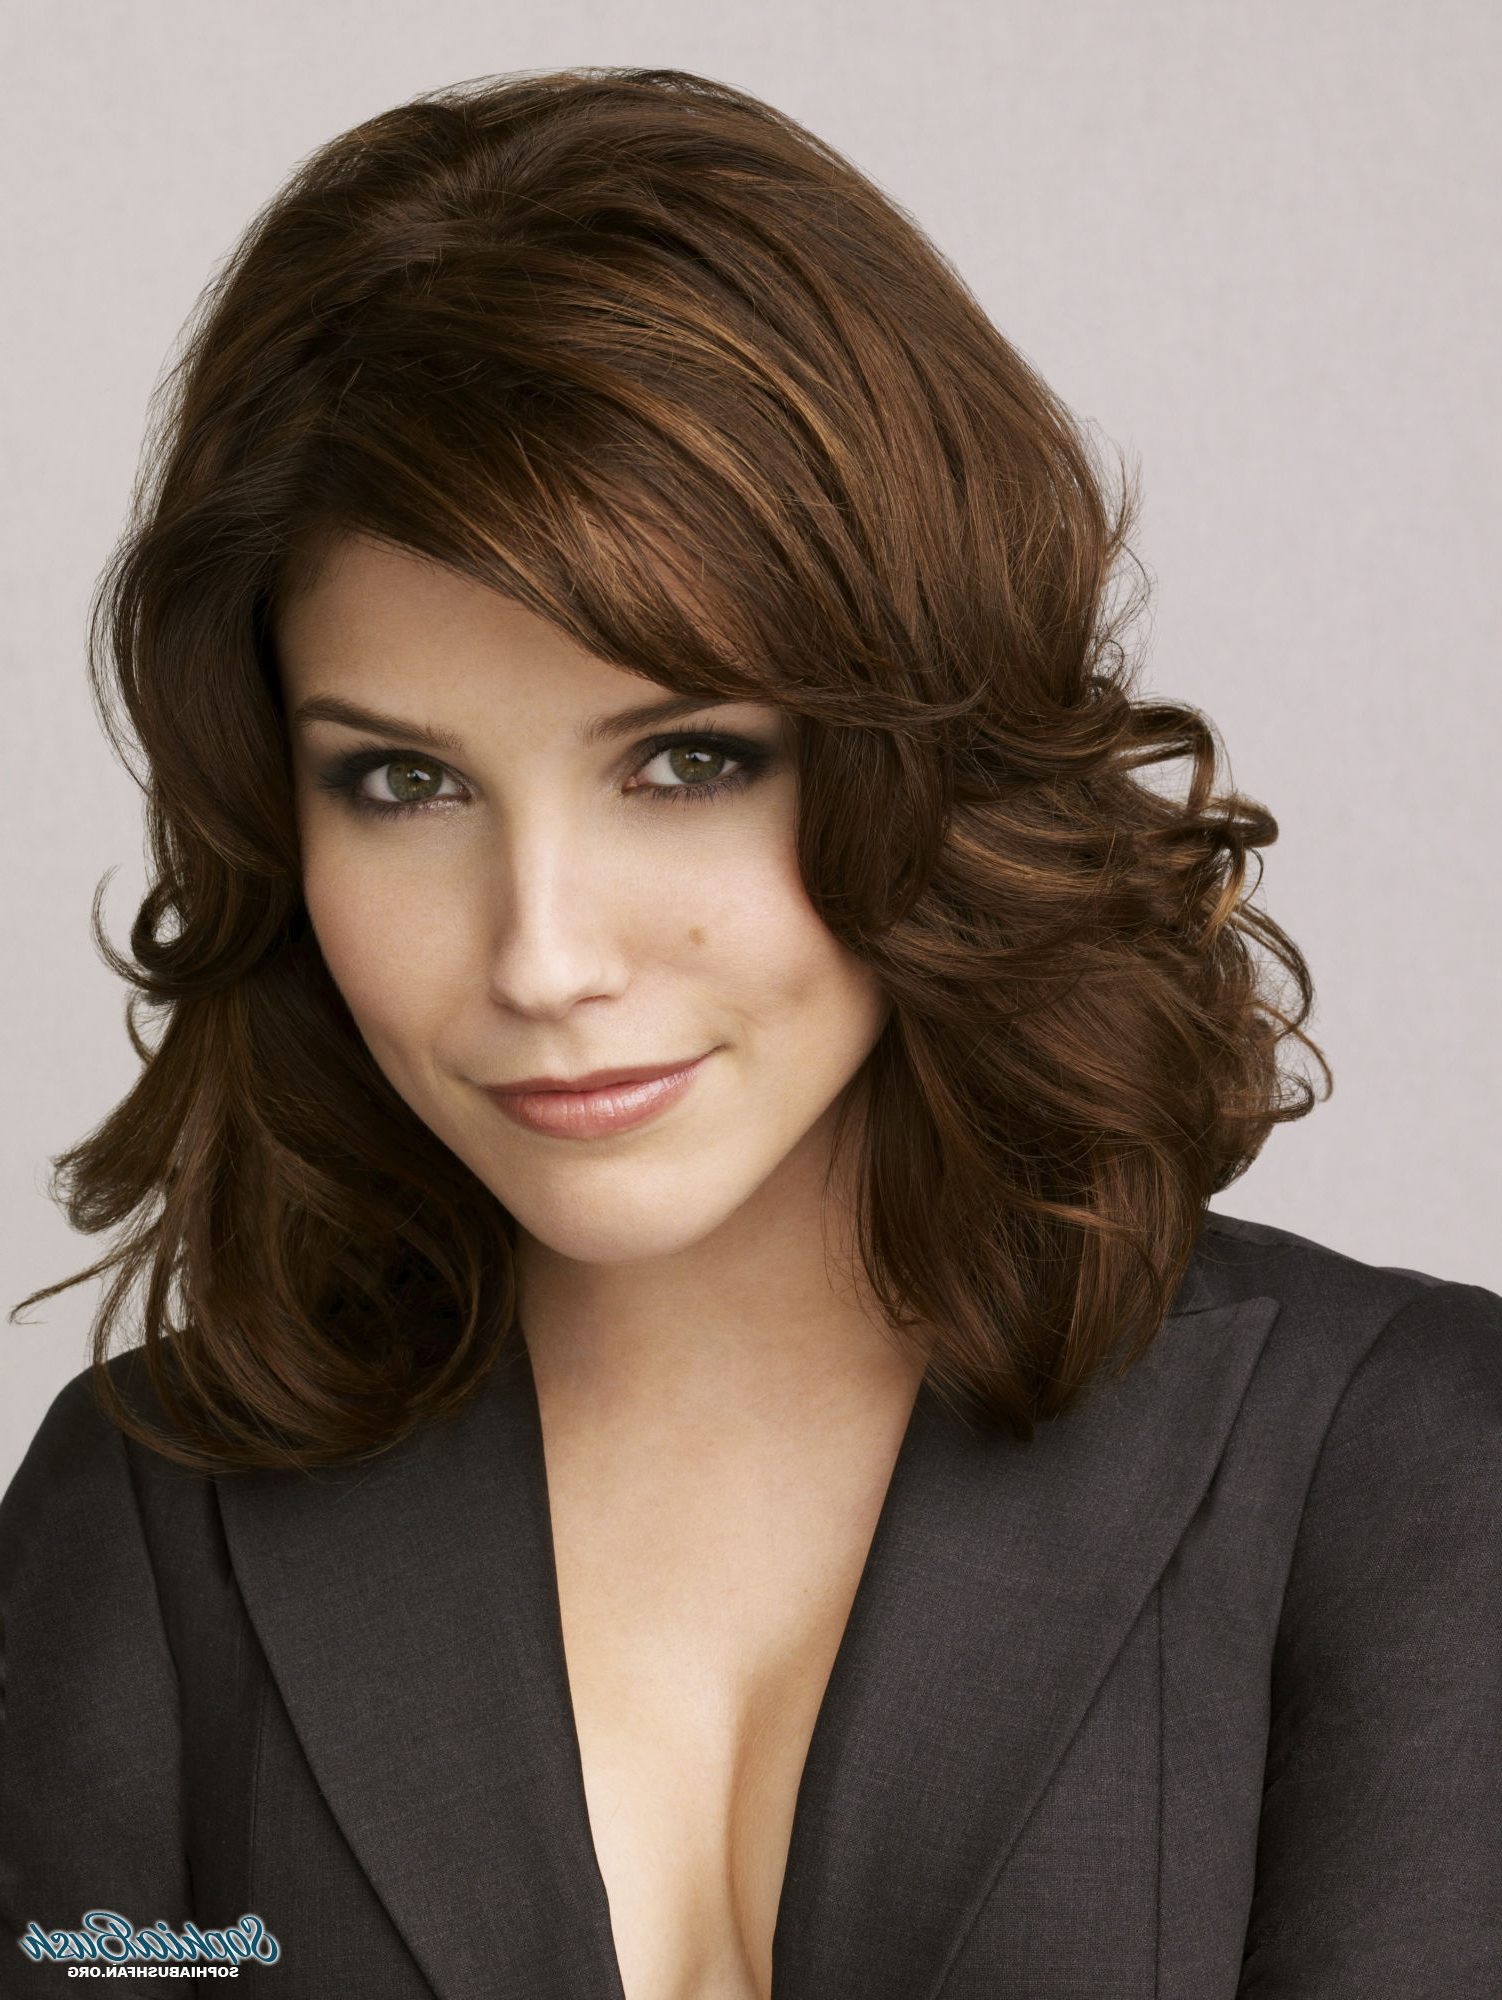 Sophia Bush Short Hairstyles – Hairstyle For Women & Man In Sophia Bush Short Hairstyles (View 20 of 25)